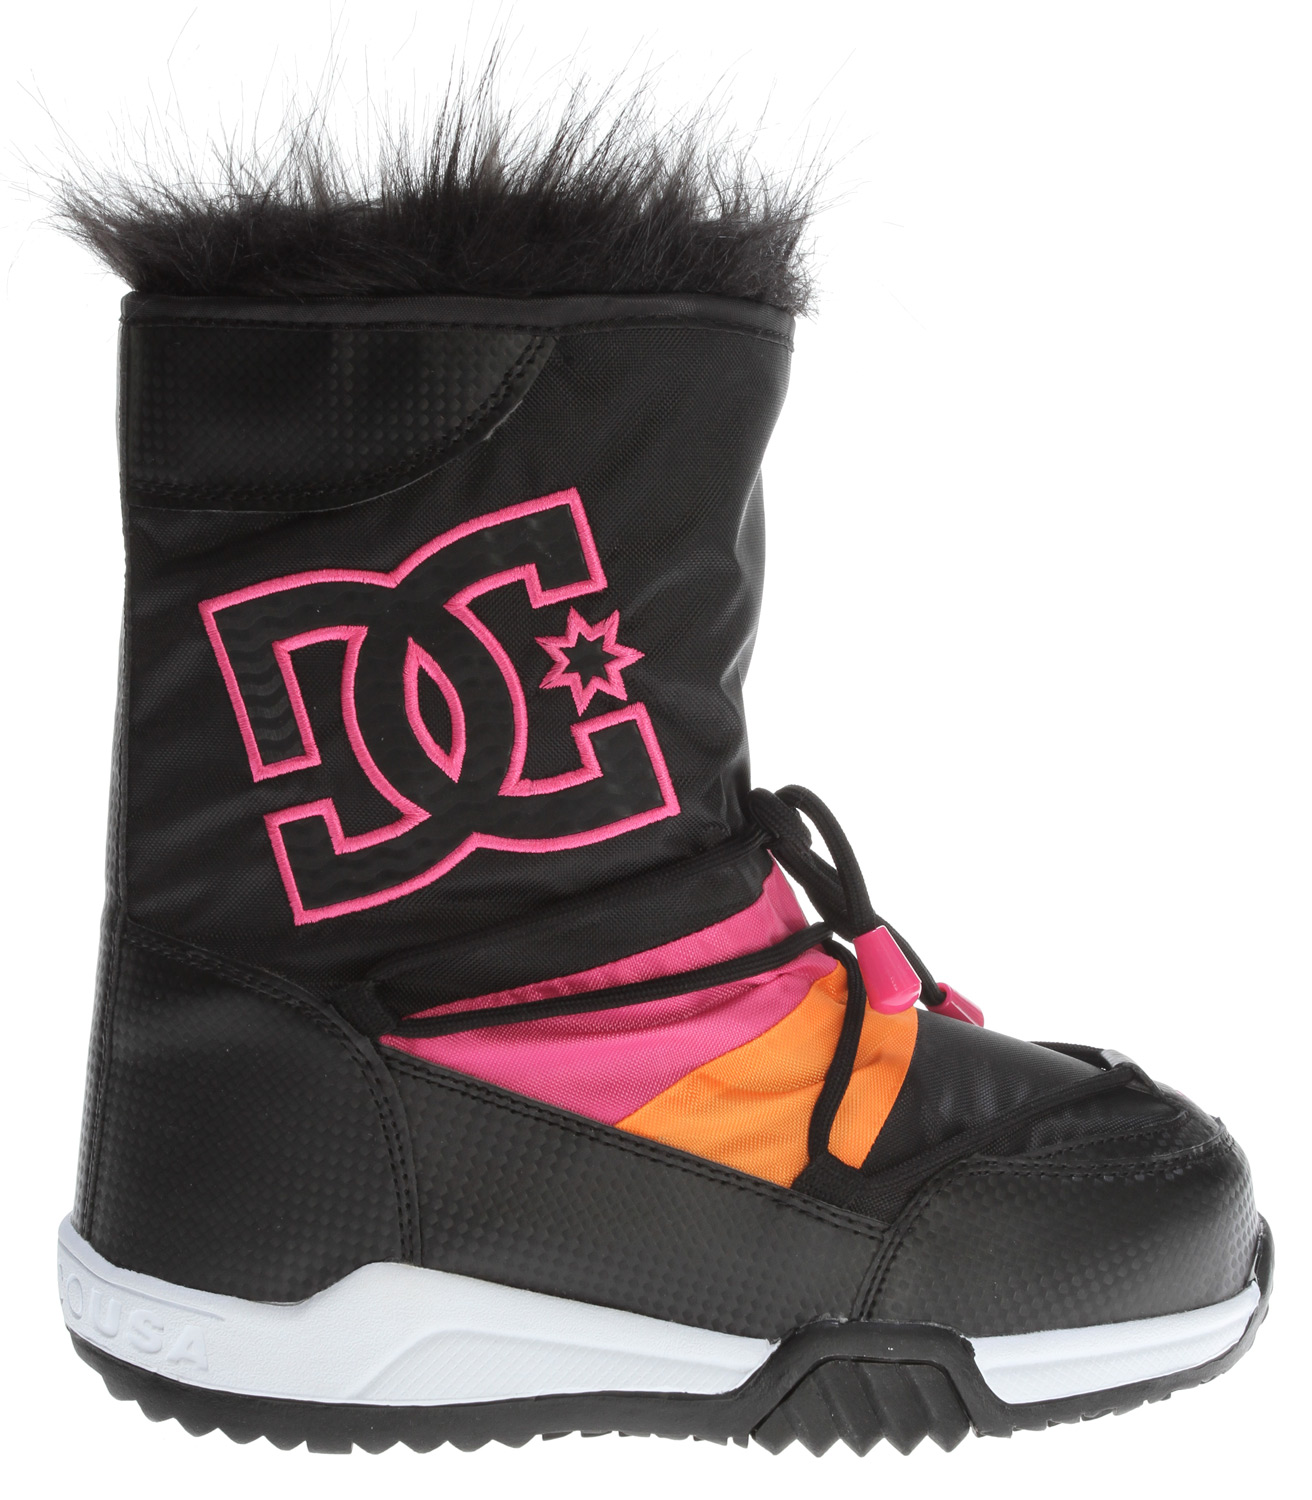 "Snowboard Key Features of the DC Lodge Boots: Nylon Hi Boot Easy Entry Faux Fur Top Collar Multicolor Quilted Panels Embroidered Logo Accents Beaded Drawstring Accents Snowboard ""Pill Pattern"" Cold Weather Outsole. - $64.95"